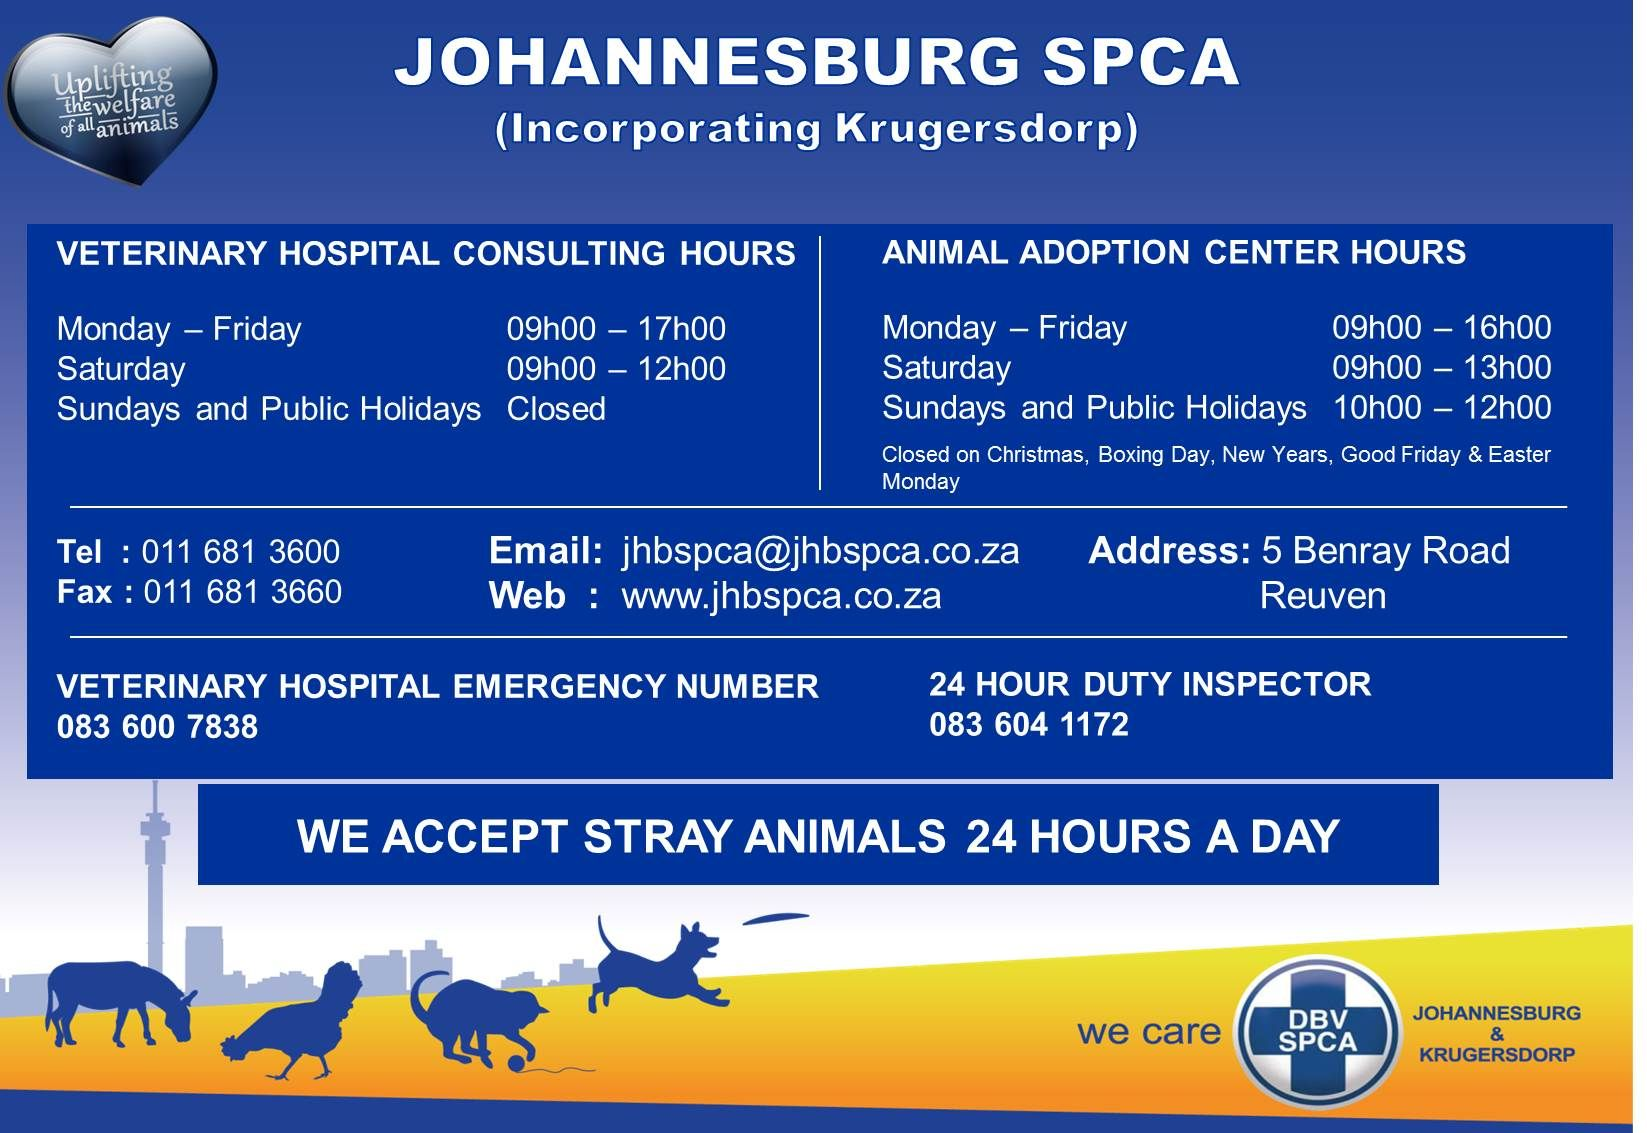 Johannesburg Spca Operating Hours And Contact Details Pet Adoption Center Veterinary Hospital Spca